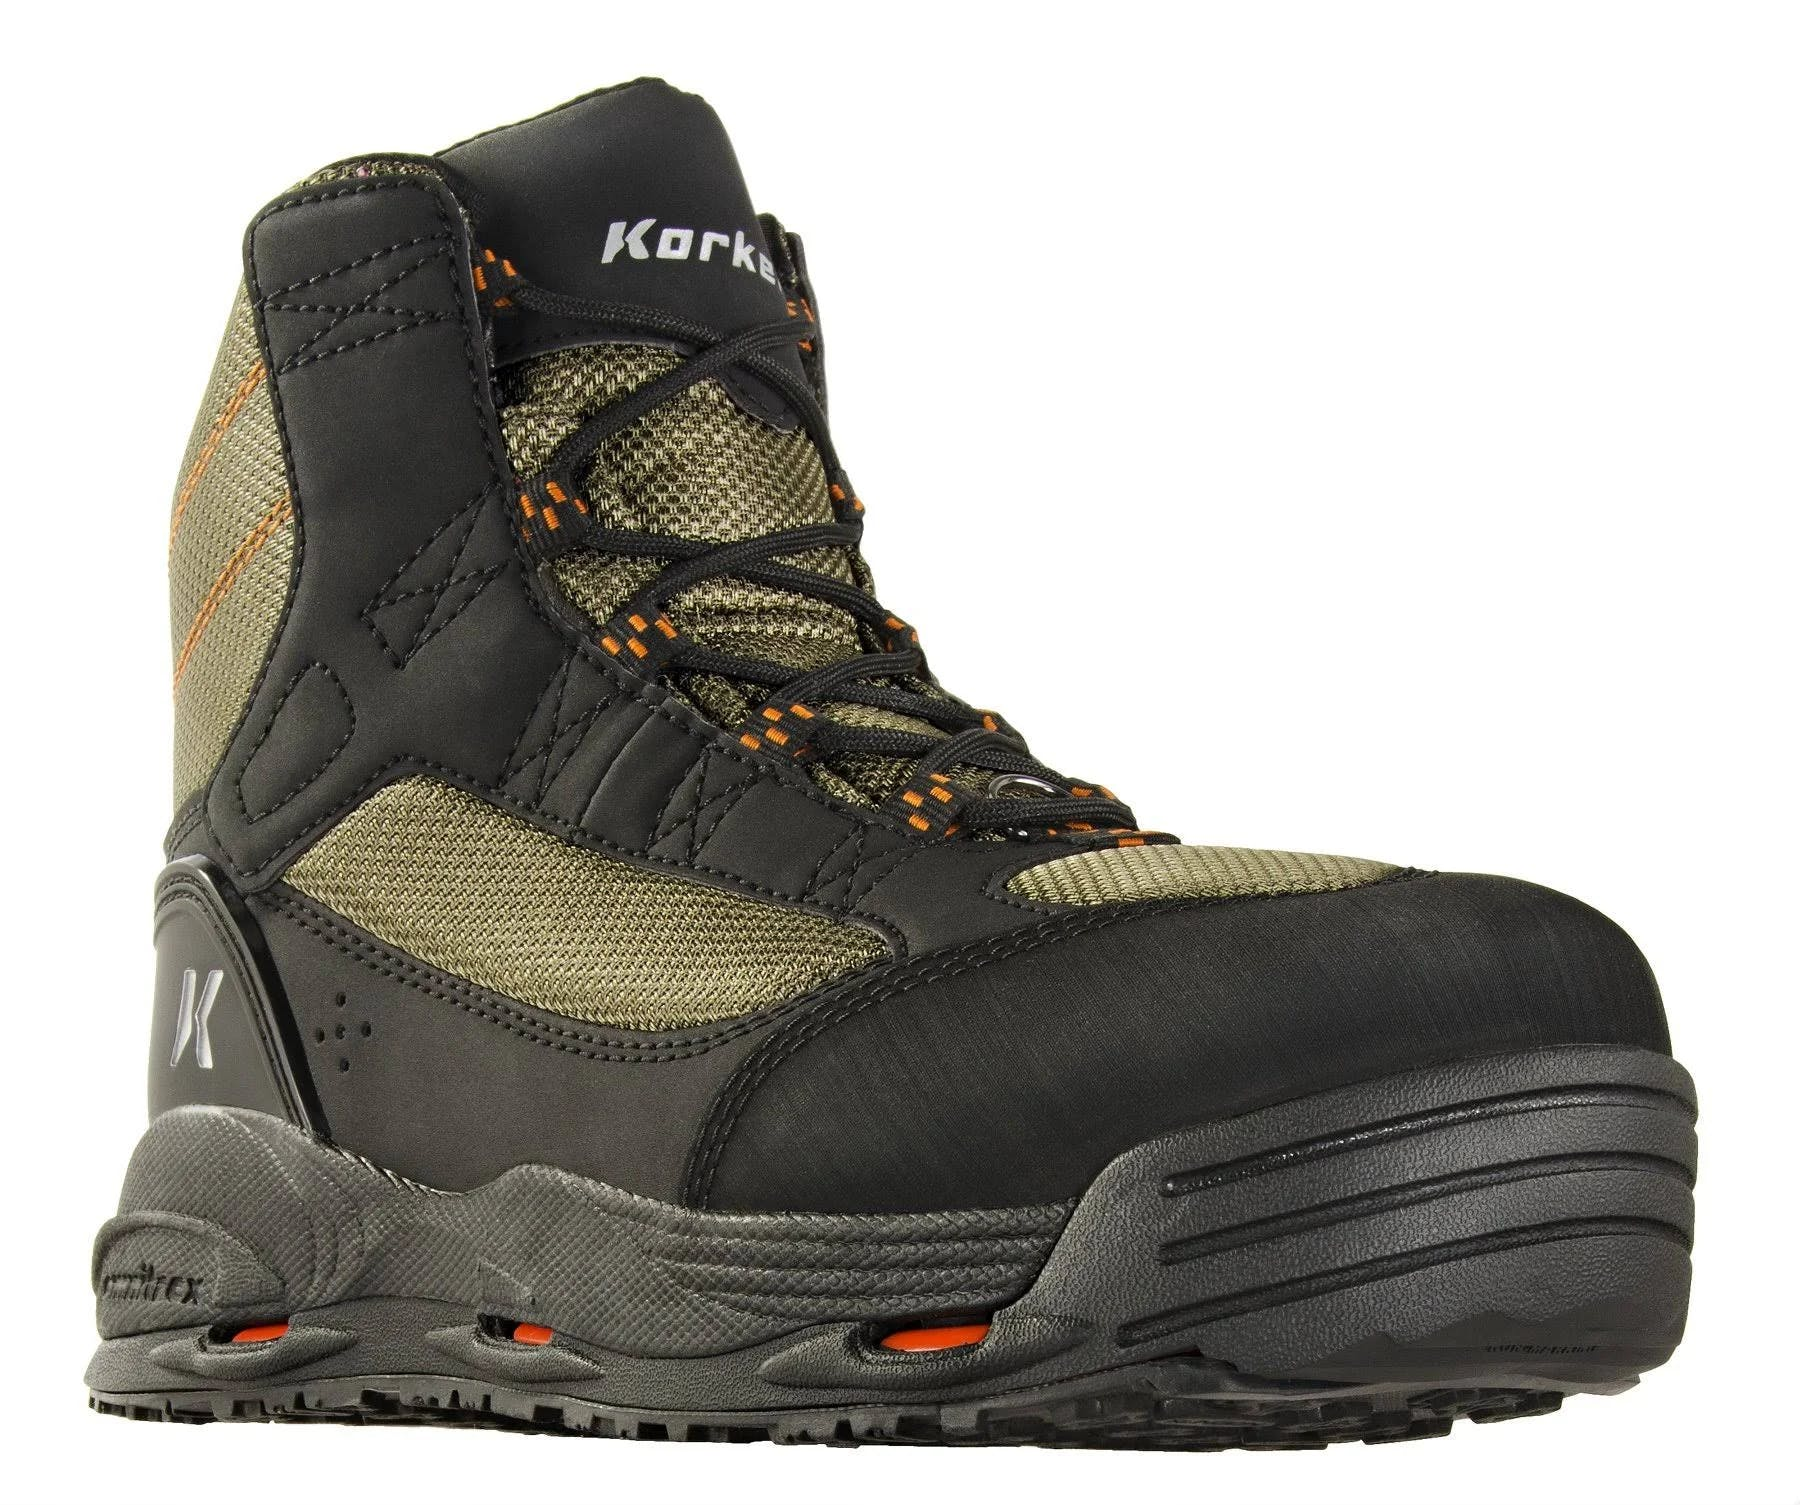 Korkers Greenback Wading Boot - Kling-On/Studded Kling-On Soles - 13